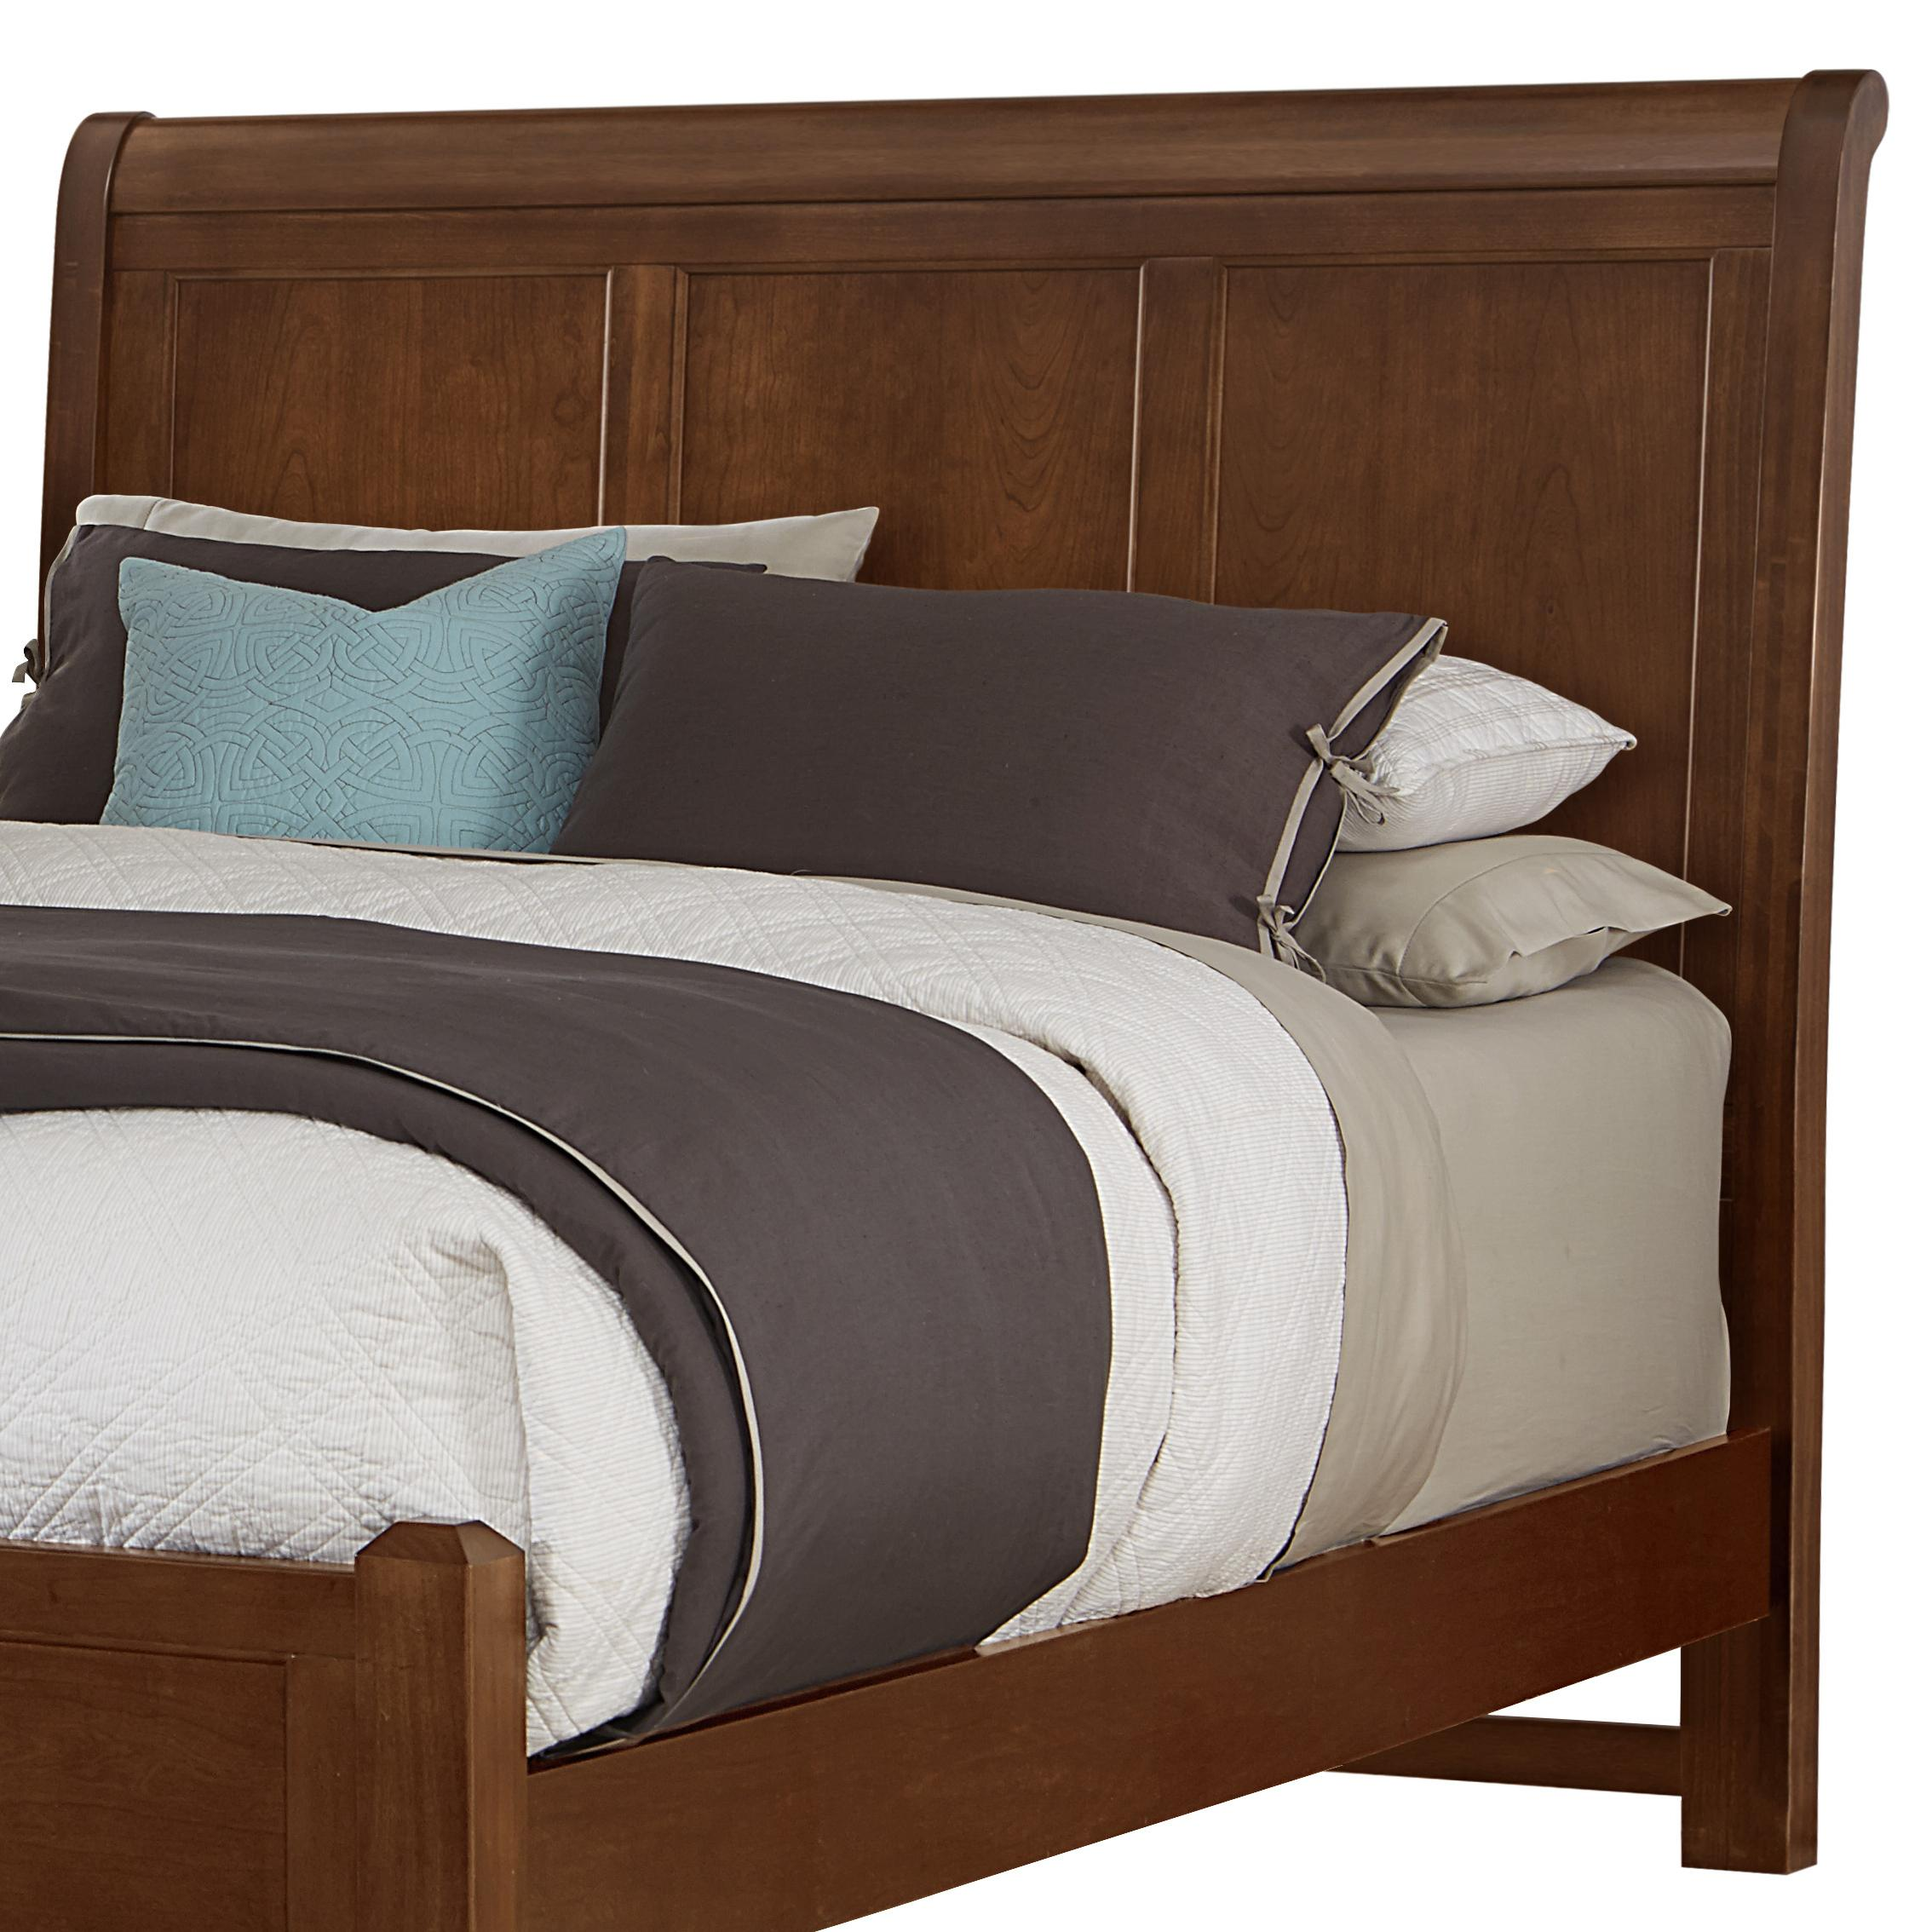 Vaughan Bassett Bonanza King Sleigh Headboard - Item Number: BB28-663